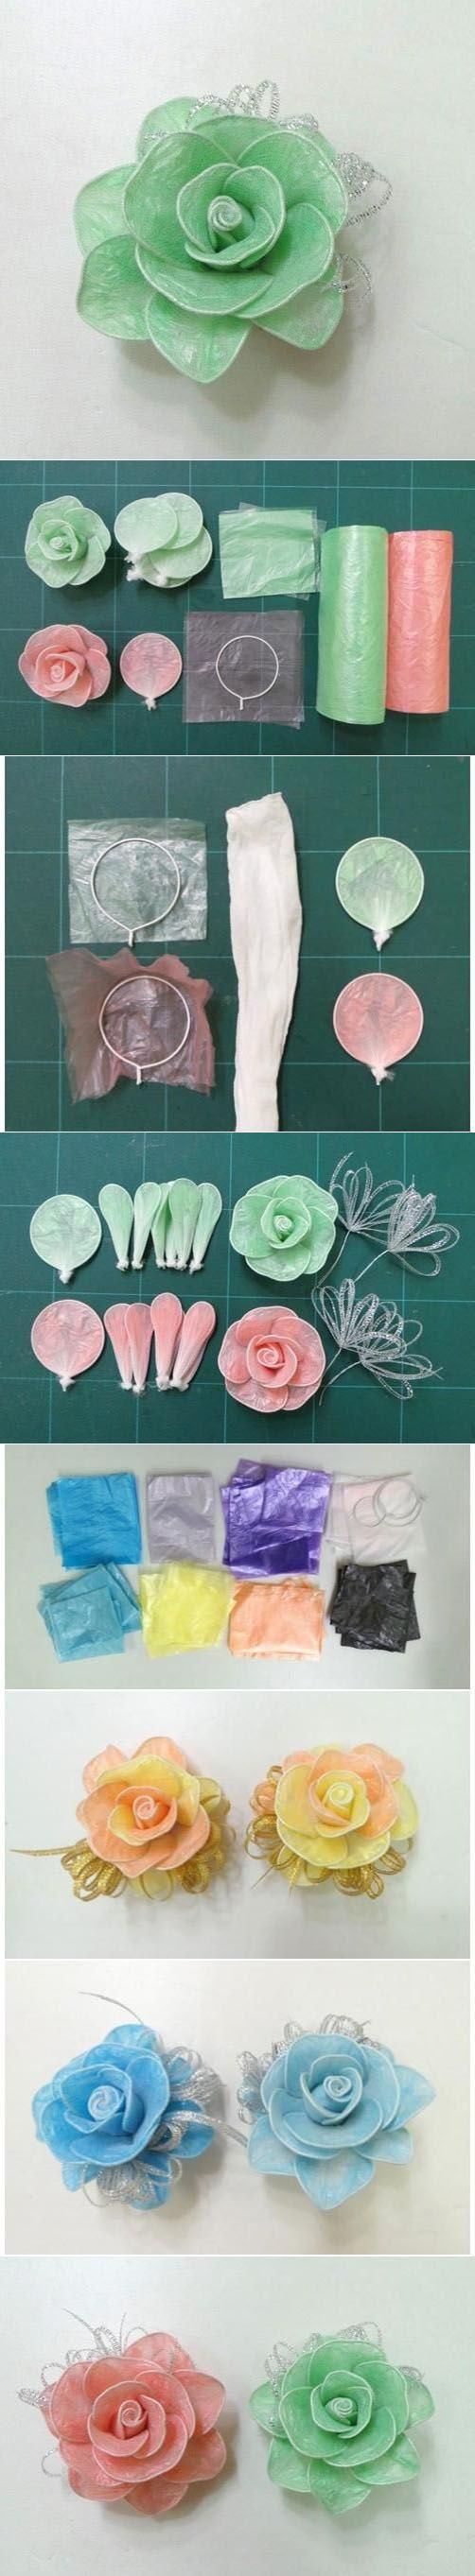 Diy Beautiful Flowers | DIY & Crafts Tutorials